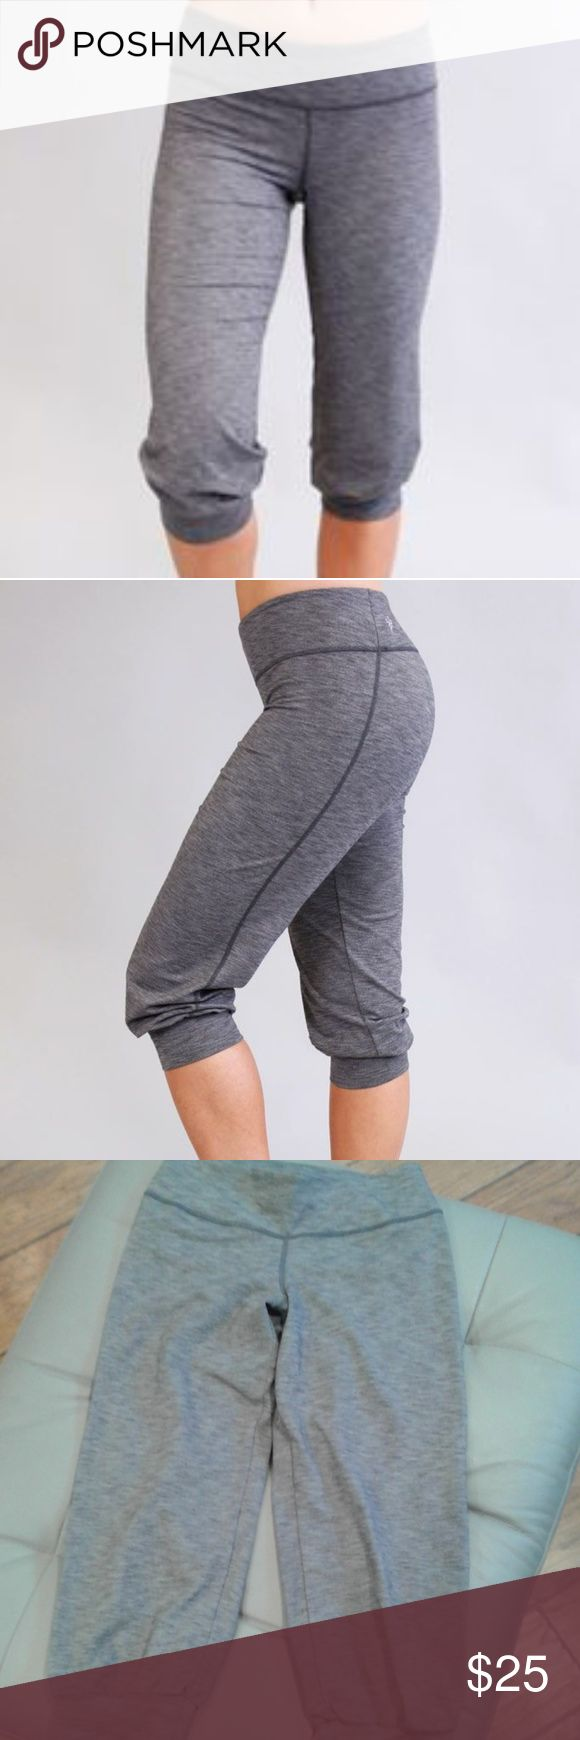 Cozy Orange Shiva Yoga Crops Shiva Yoga Crops - Heather Charcoal | Cozy Orange Women's Yoga ORGANIC Sz s like NEW  Heathered Cozy-Lux  Our thickest Supplex® fabric blend designed to offer added compression and support during high intensity workouts and extreme postures. Offering exceptional elasticity for added stretchiness.   Other Fashionably Functional Benefits:  Anti-sheer coverage & pilling resistance  Four-way stretching for increased mobility  Warmth retention to really get the…